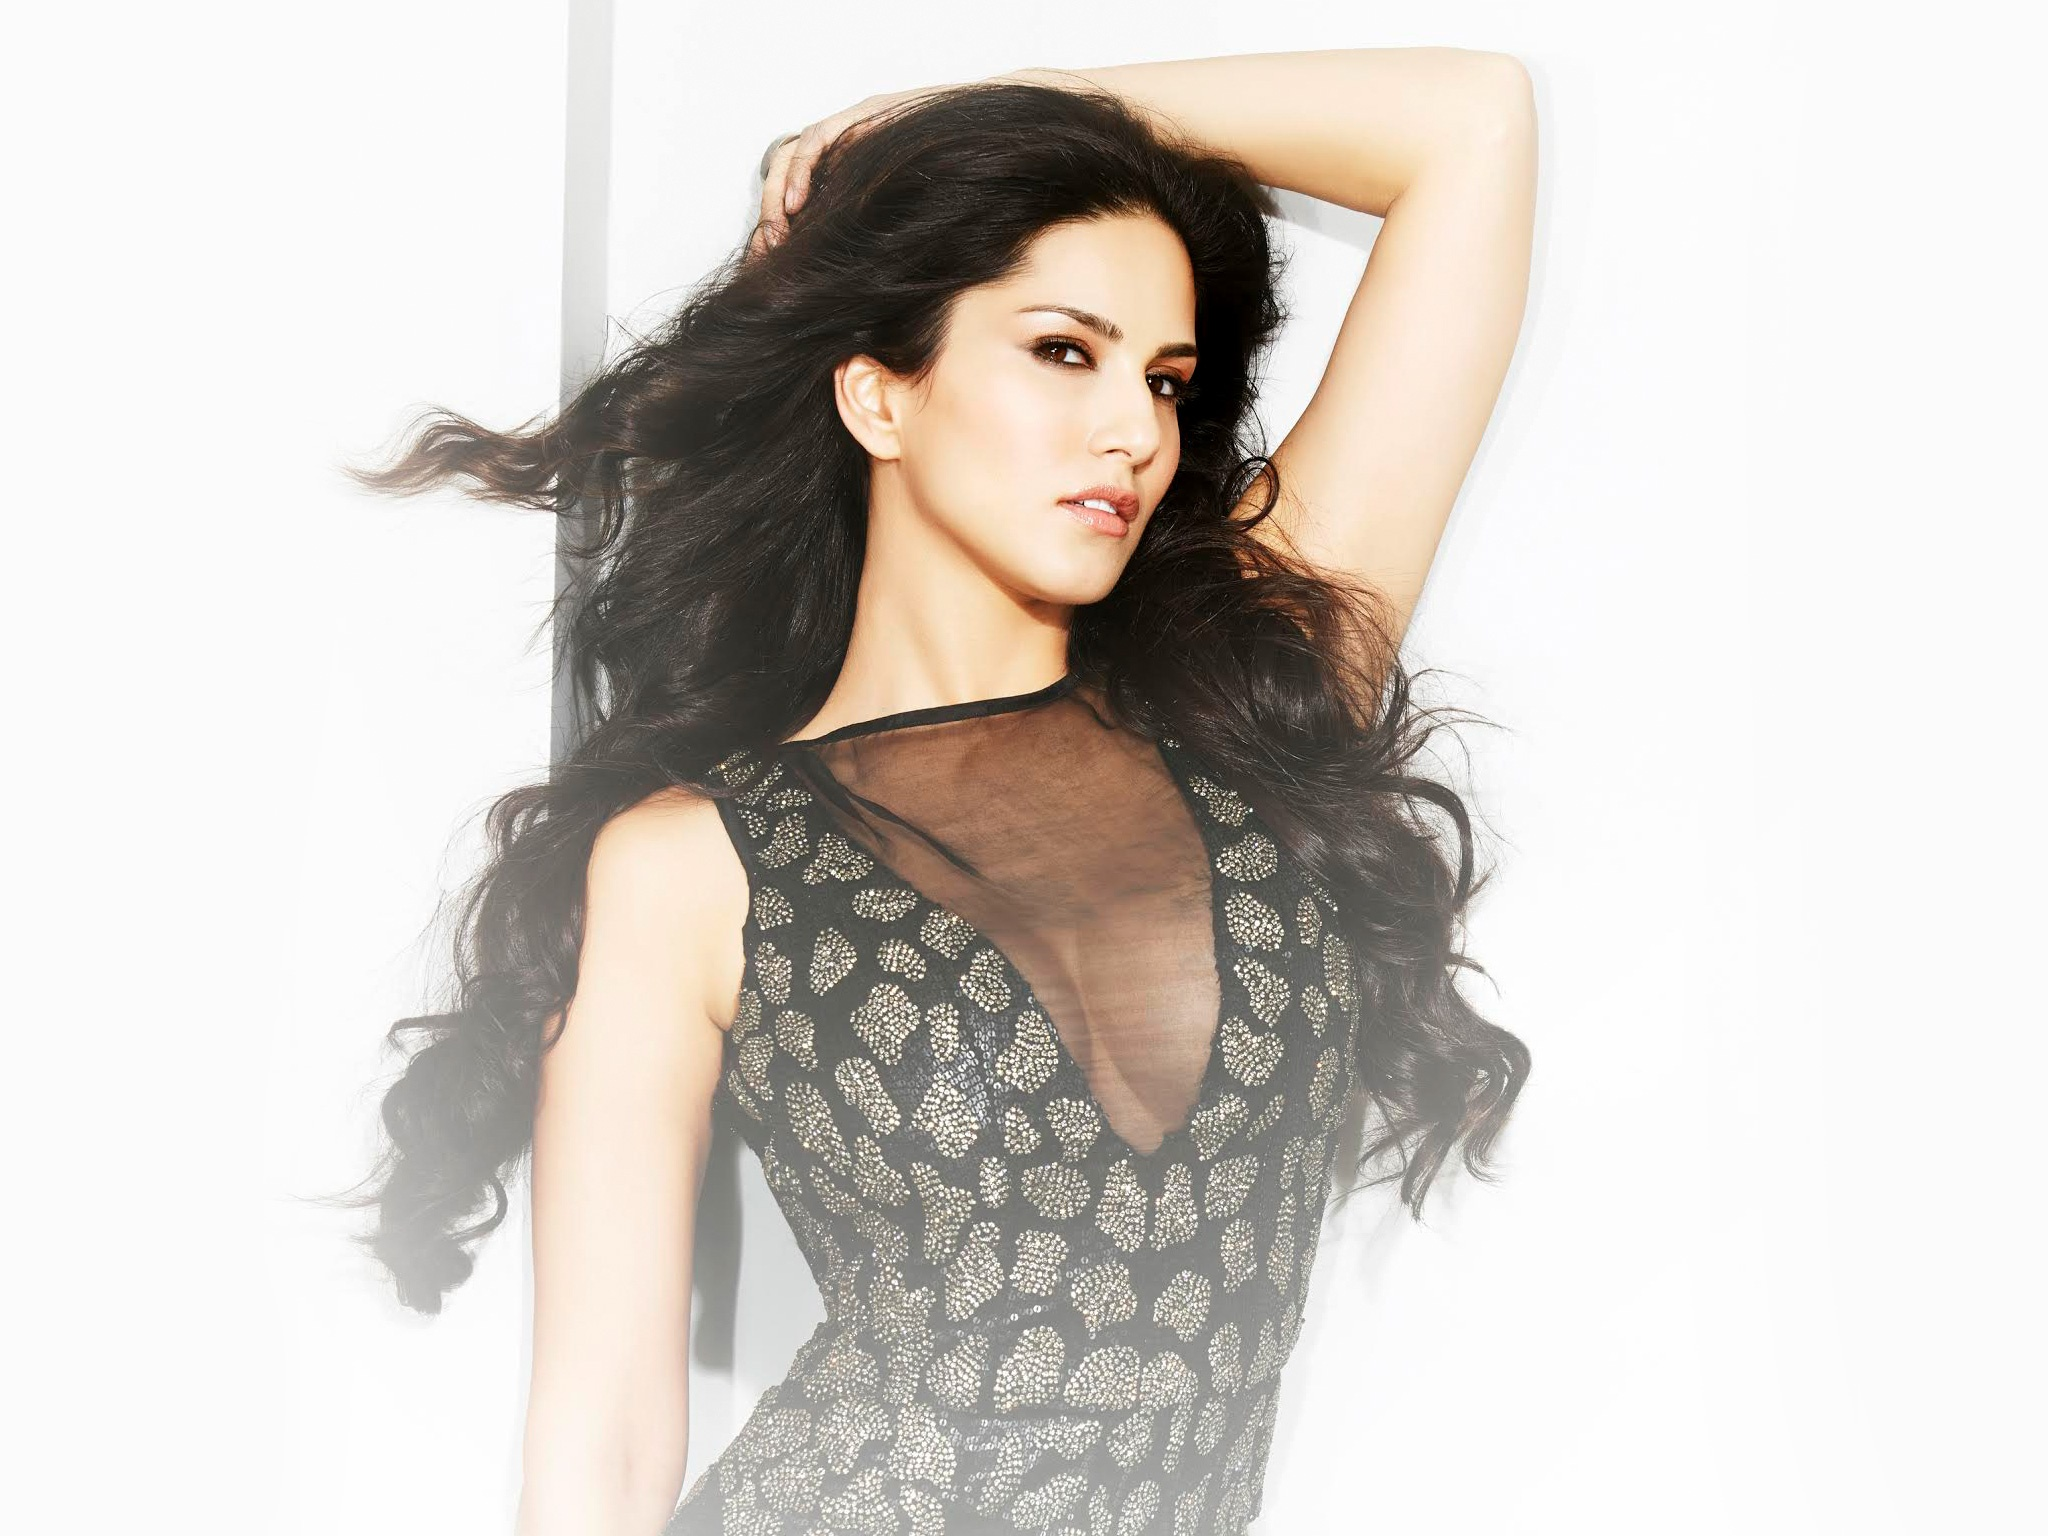 Sunny Leone 2016 Wallpapers In Jpg Format For Free Download